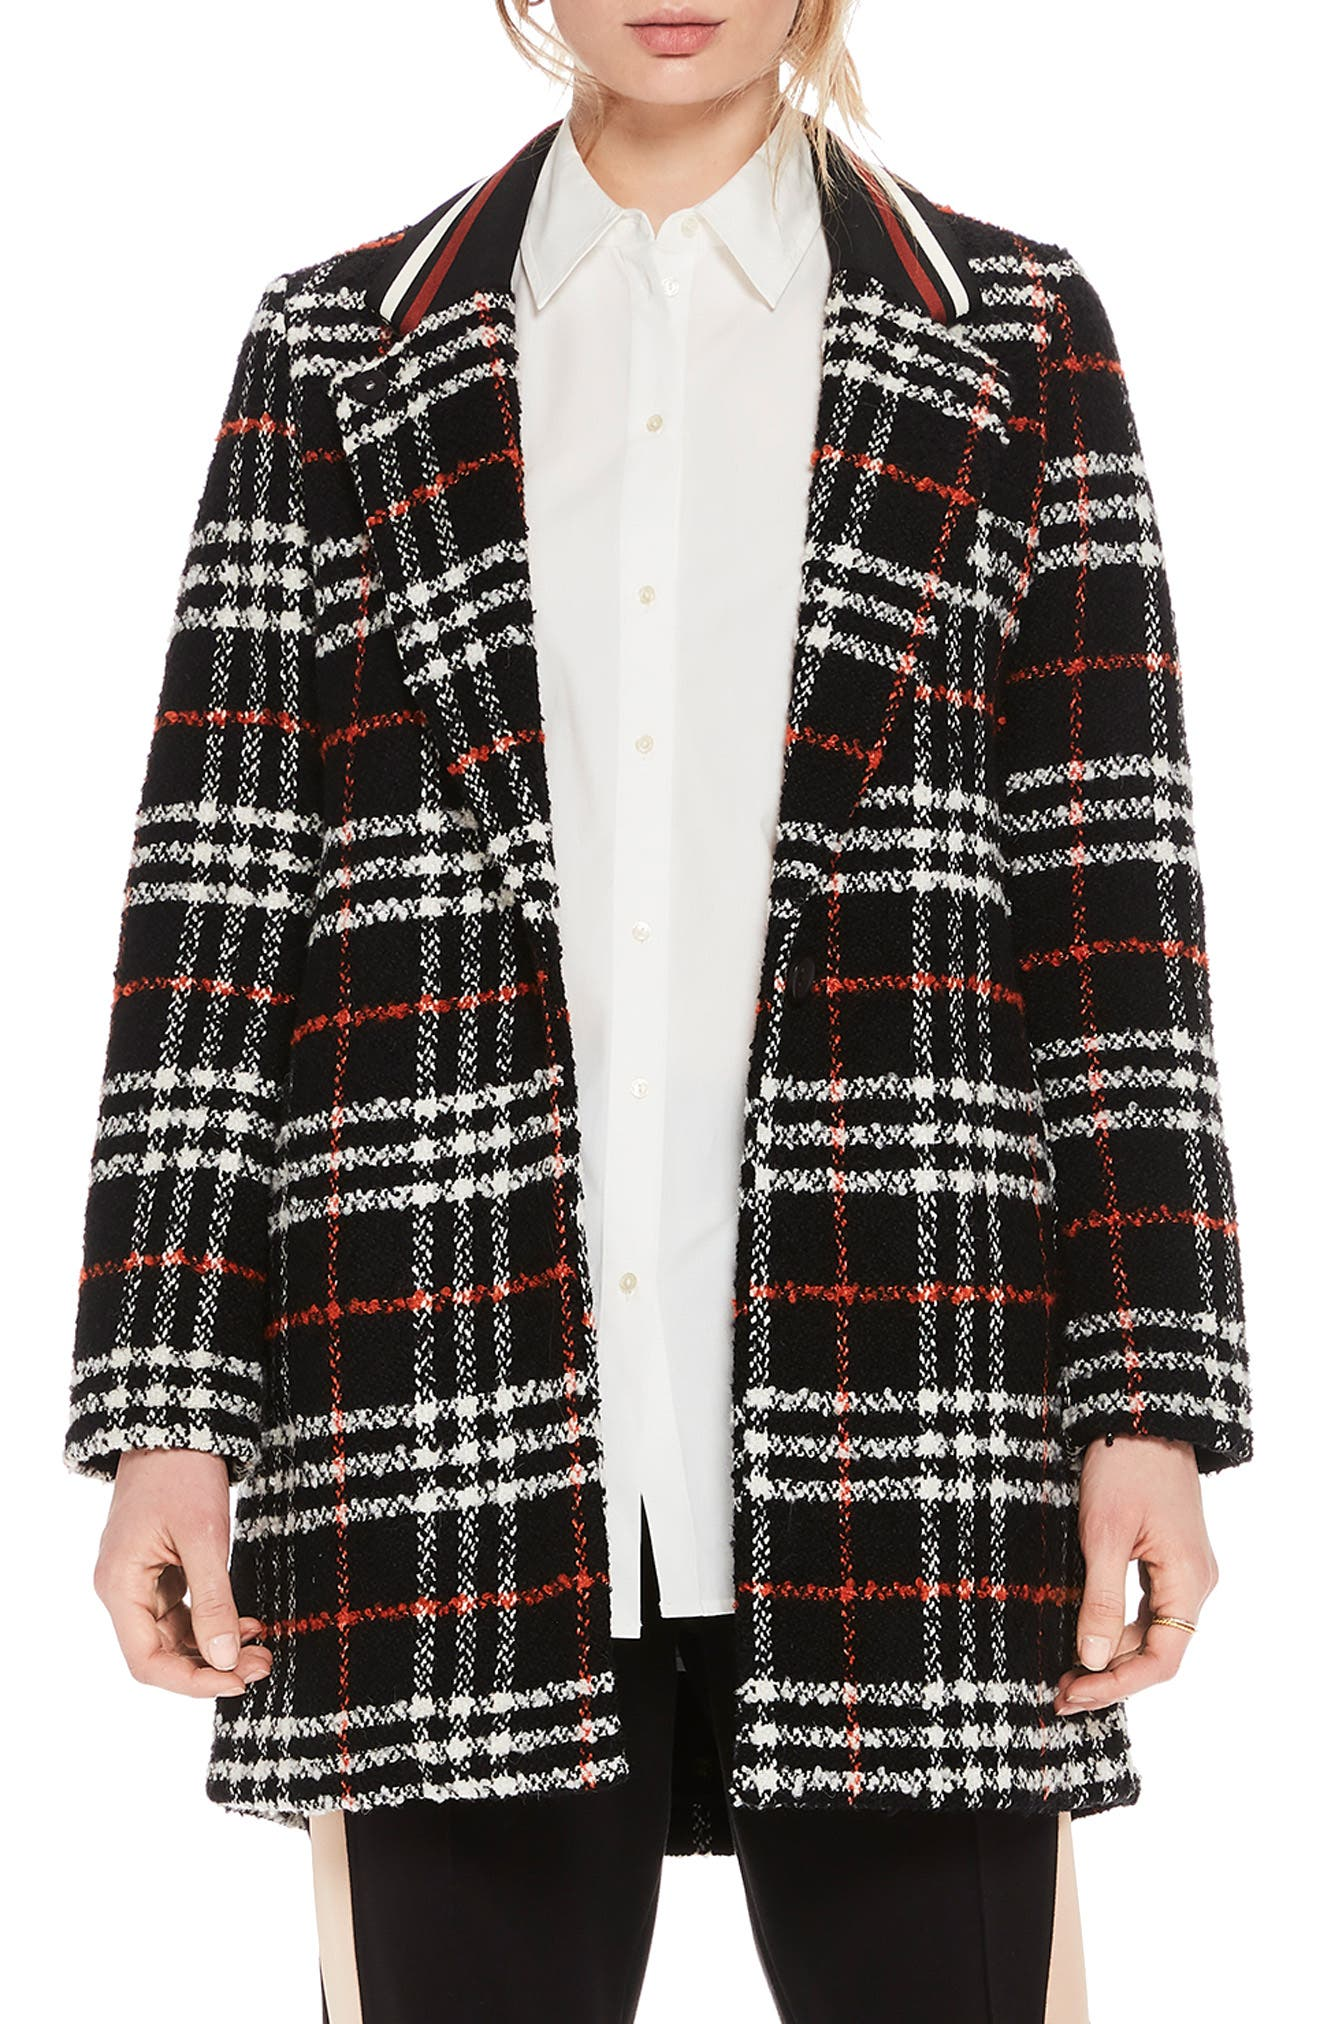 Bonded Wool Blend Jacket,                             Main thumbnail 1, color,                             BLACK AND RED PLAID